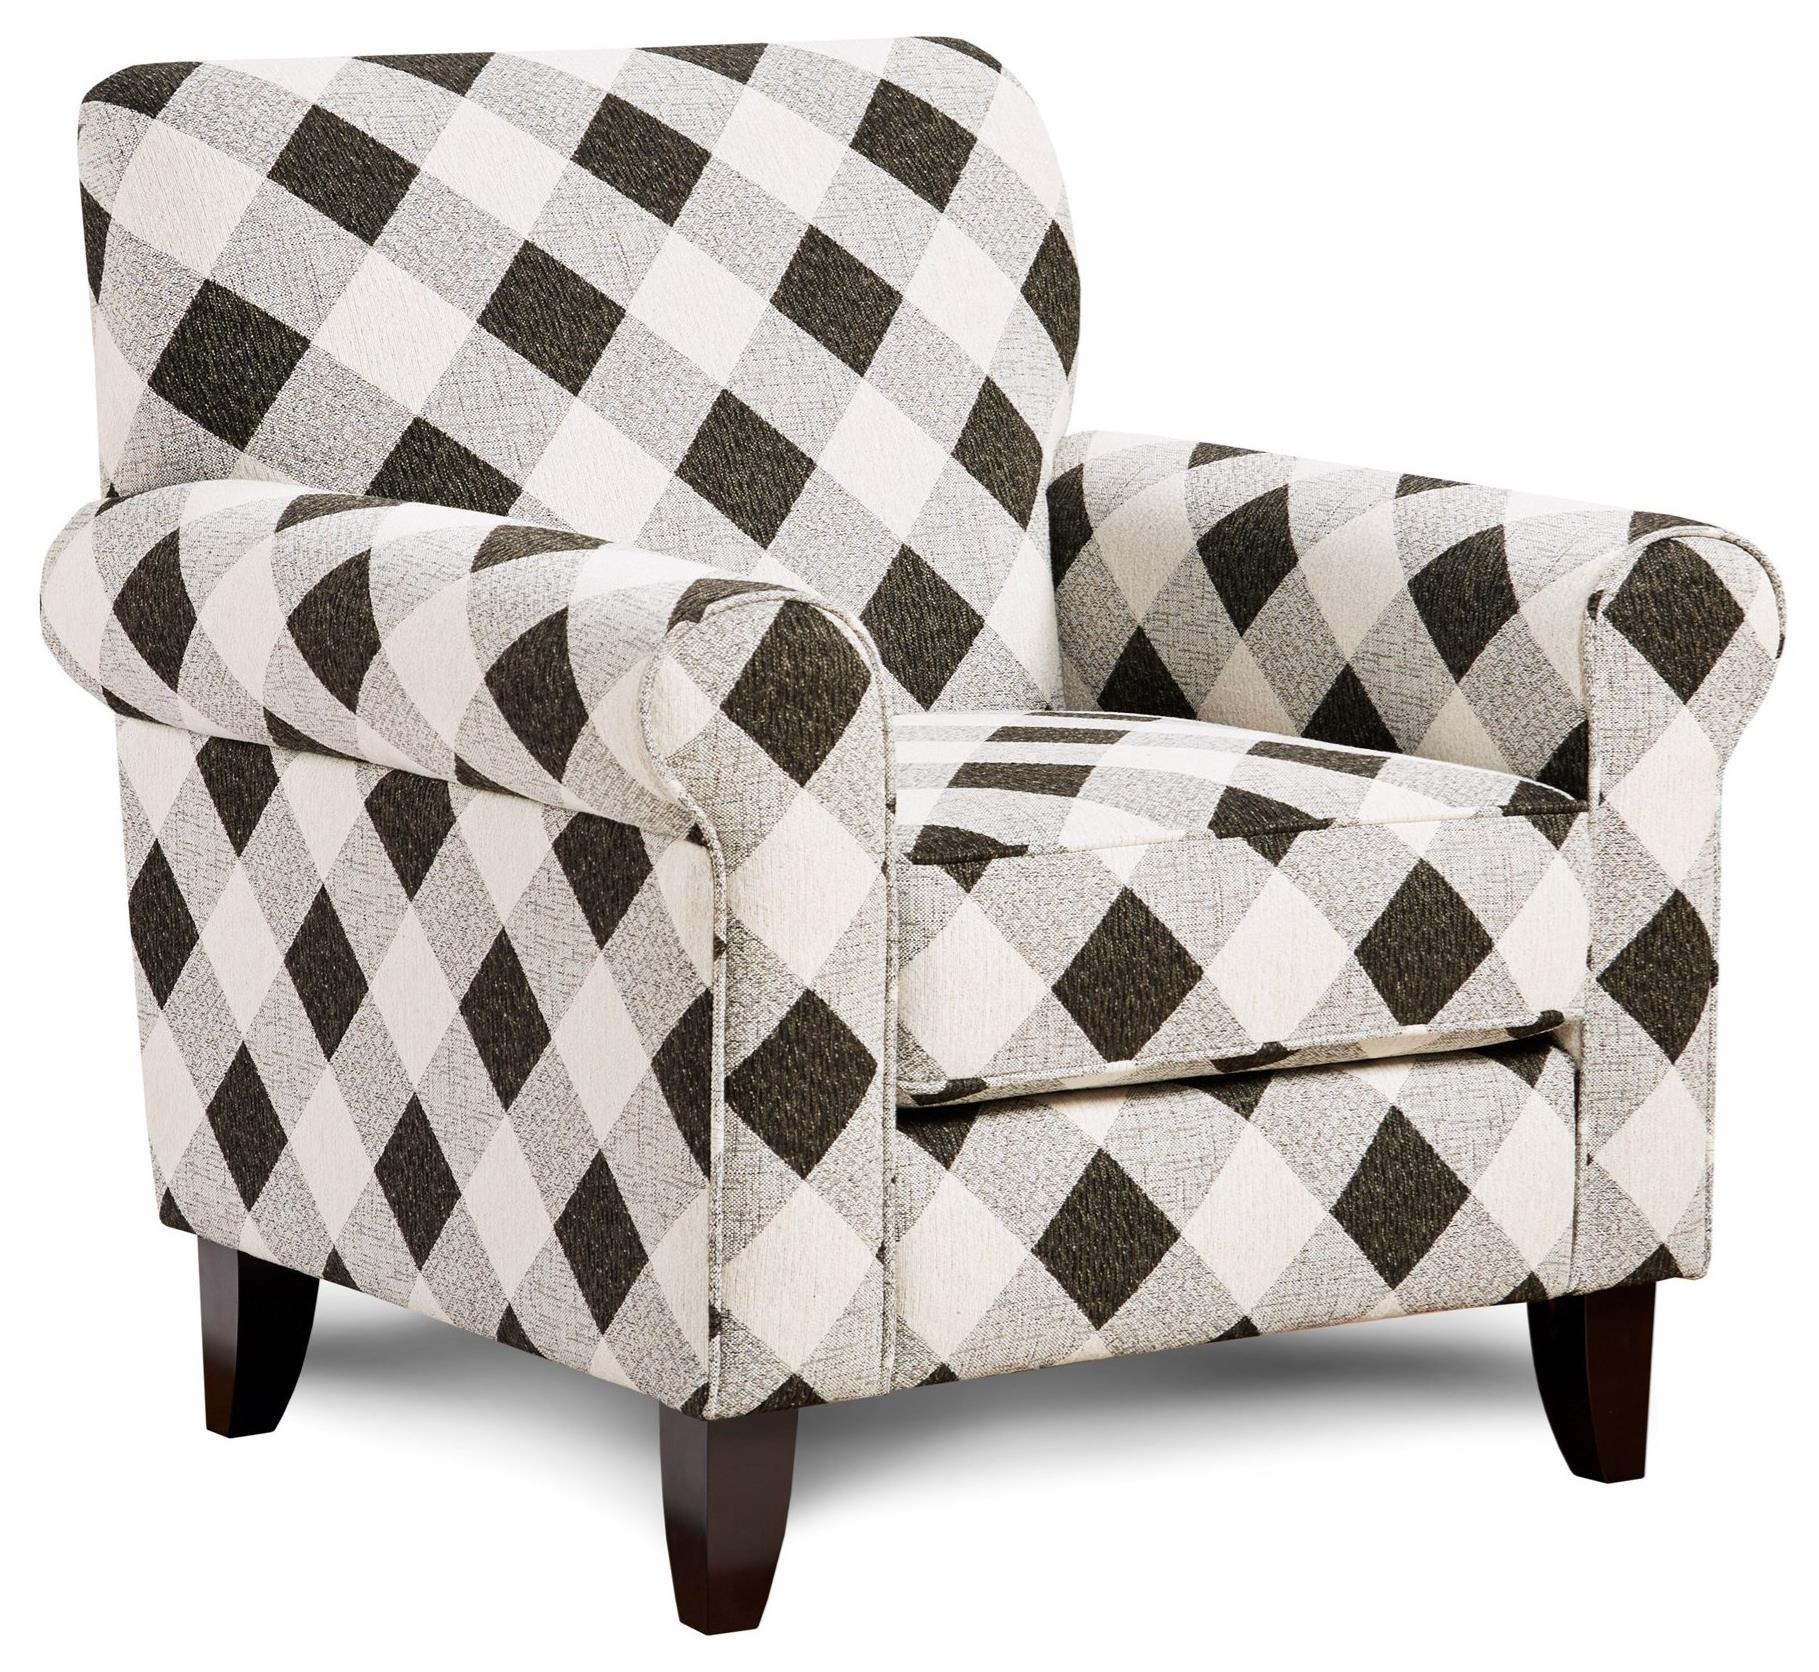 512 Accent Chair by FN at Lindy's Furniture Company